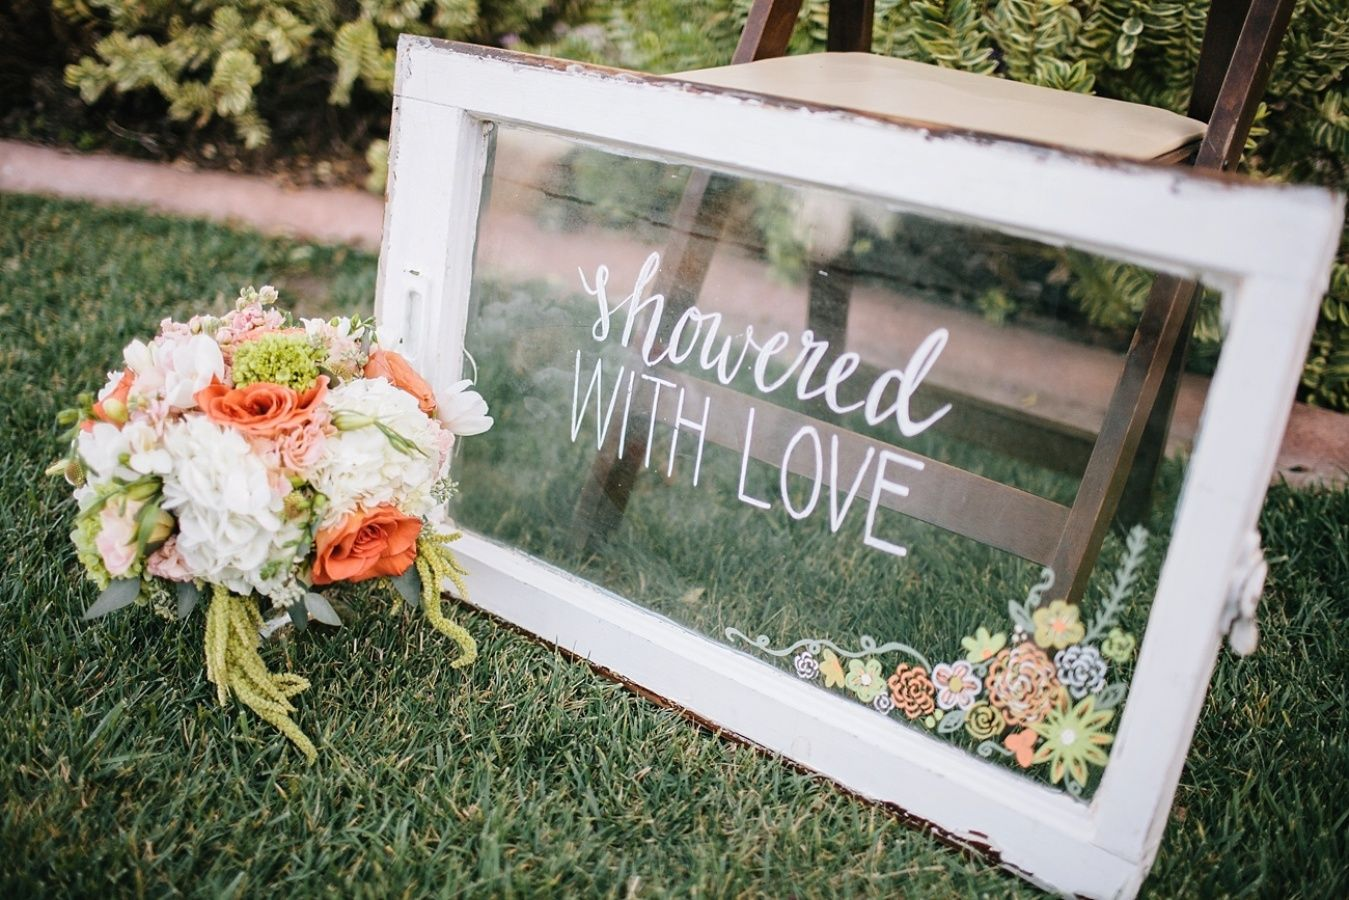 With my own wedding a mere six months away, this slice of pretty has me feeling over the moon full-of-romance and eager to plan the final details. It's a darling bridal shower shoot that displays the stunning work of the vendor team that's